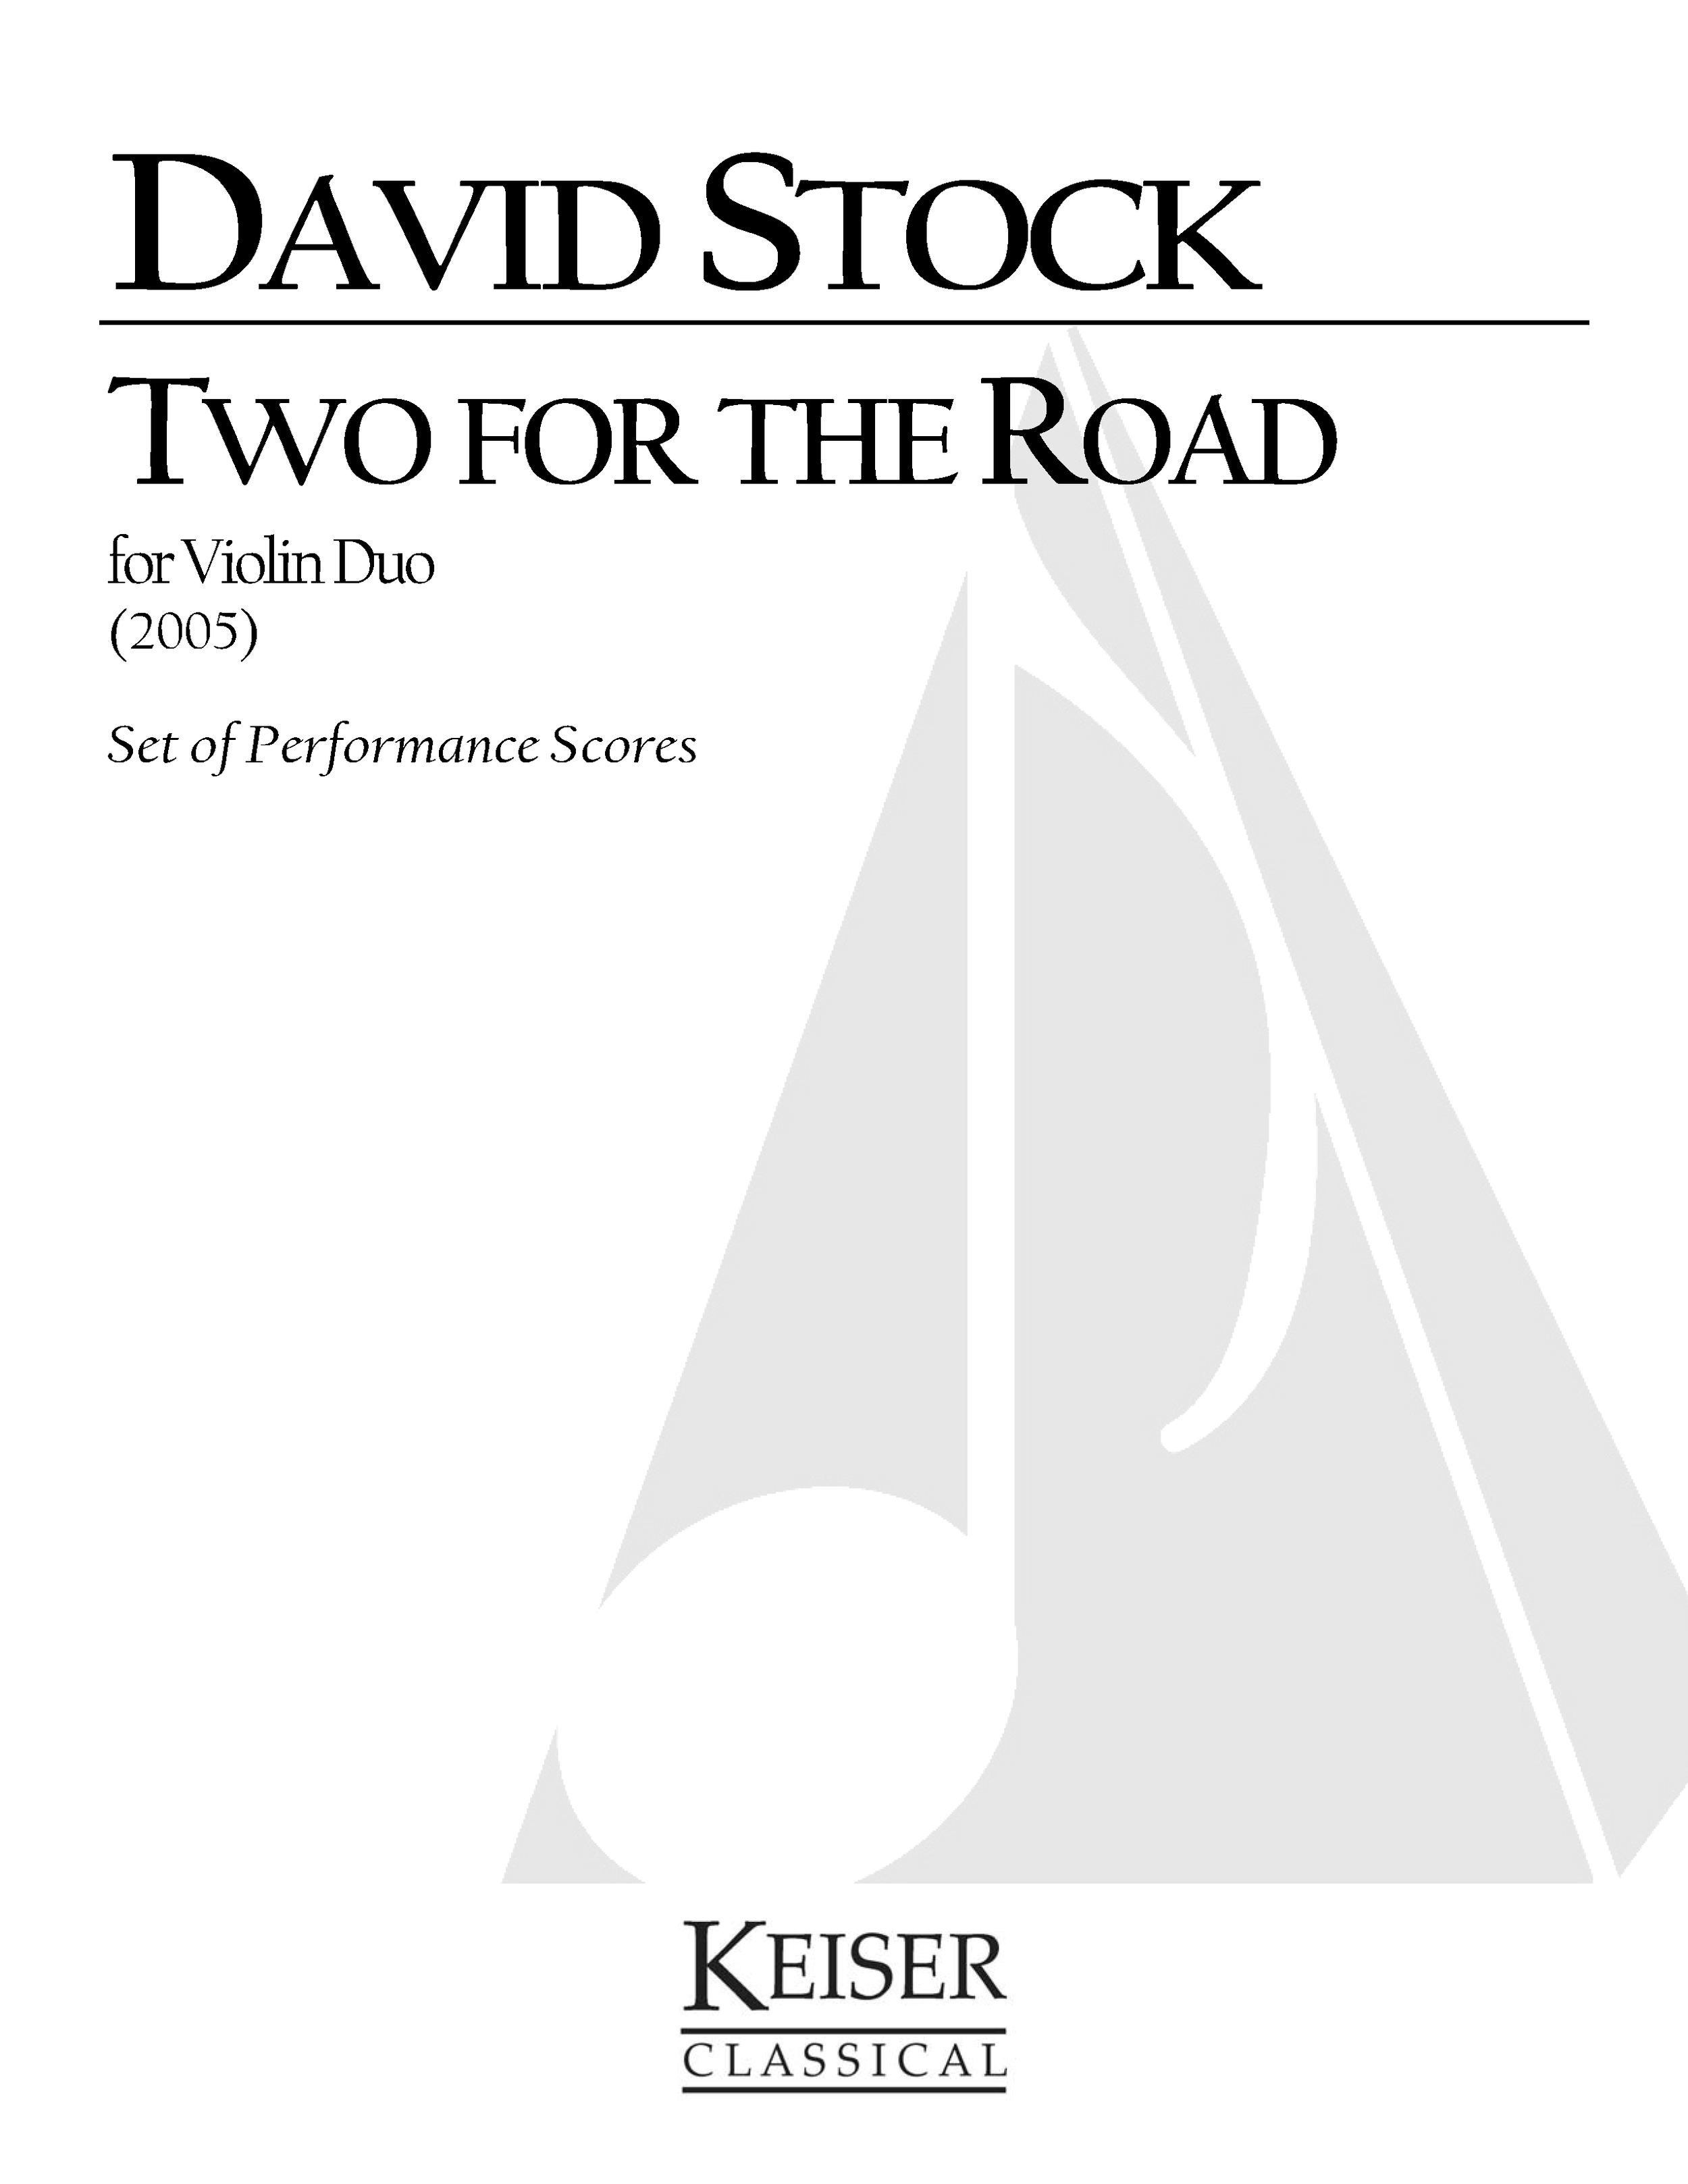 Two for the Road (2005) - 2 ViolinsRent/Buy: Keiser Music